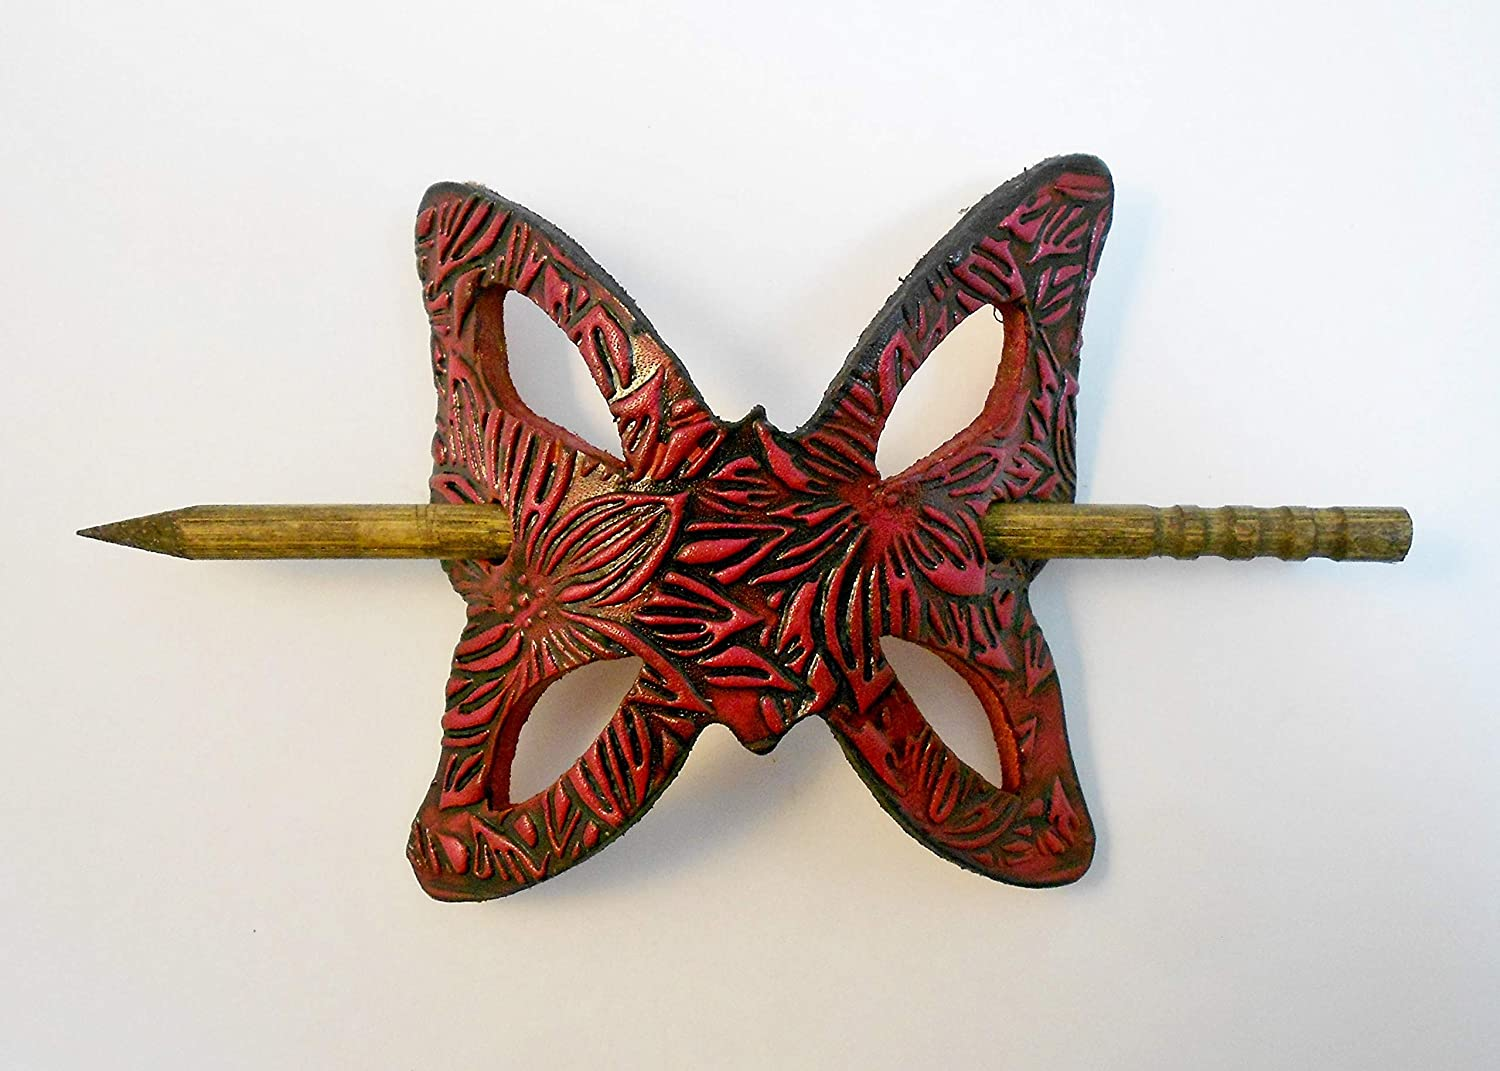 2 Tooled Leather Butterfly Hair 4 years warranty w Color Branded goods Sticks Bright Barrettes